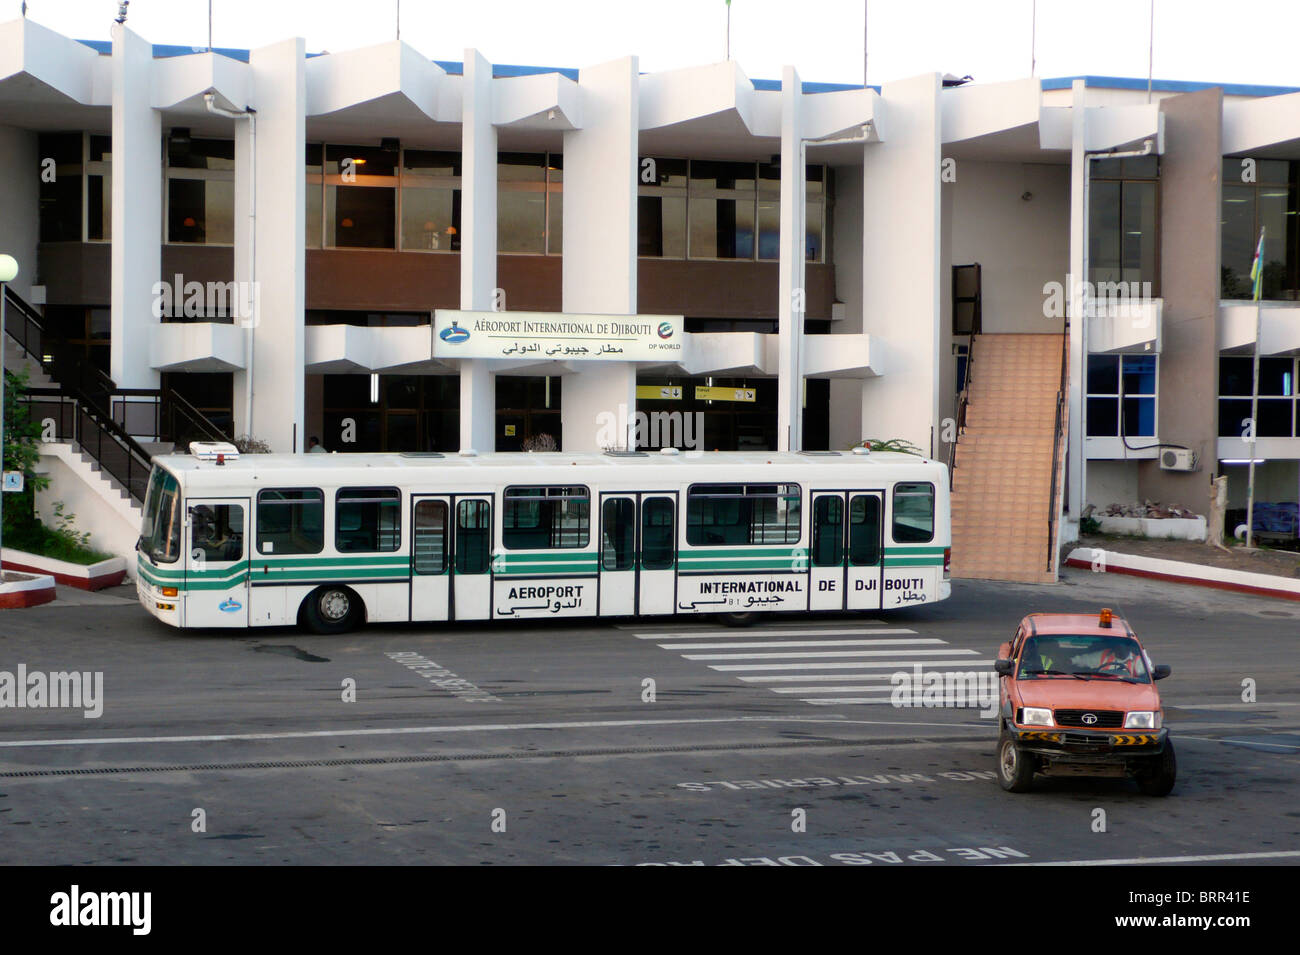 Bus parked outside Djibouti airport - Stock Image